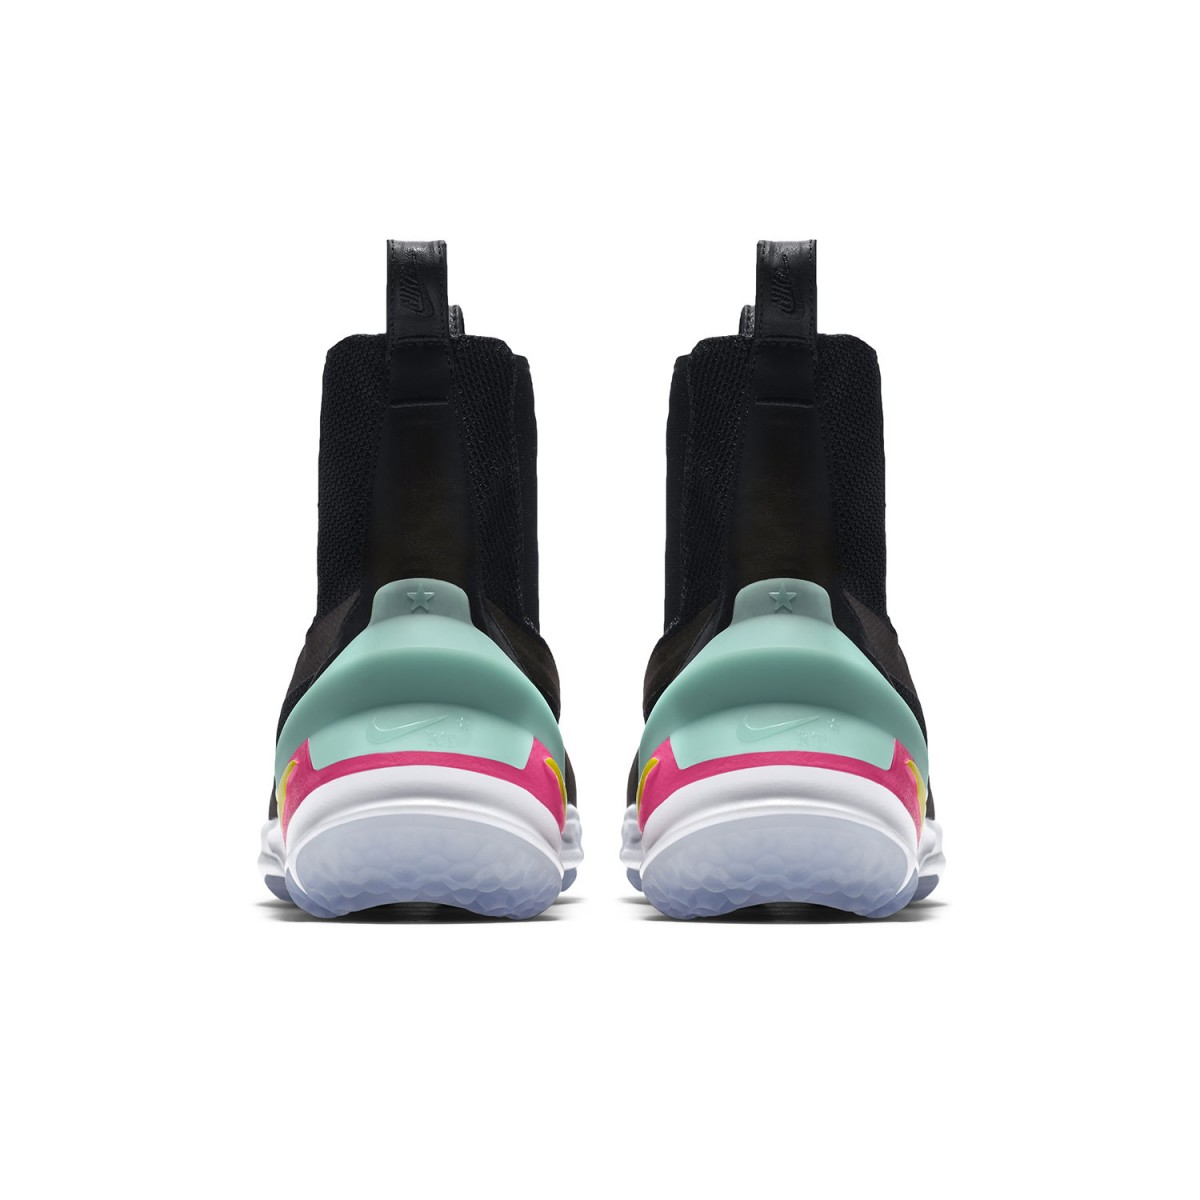 nikelab-air-zoom-legend-riccardo-tisci-6-1200x1200